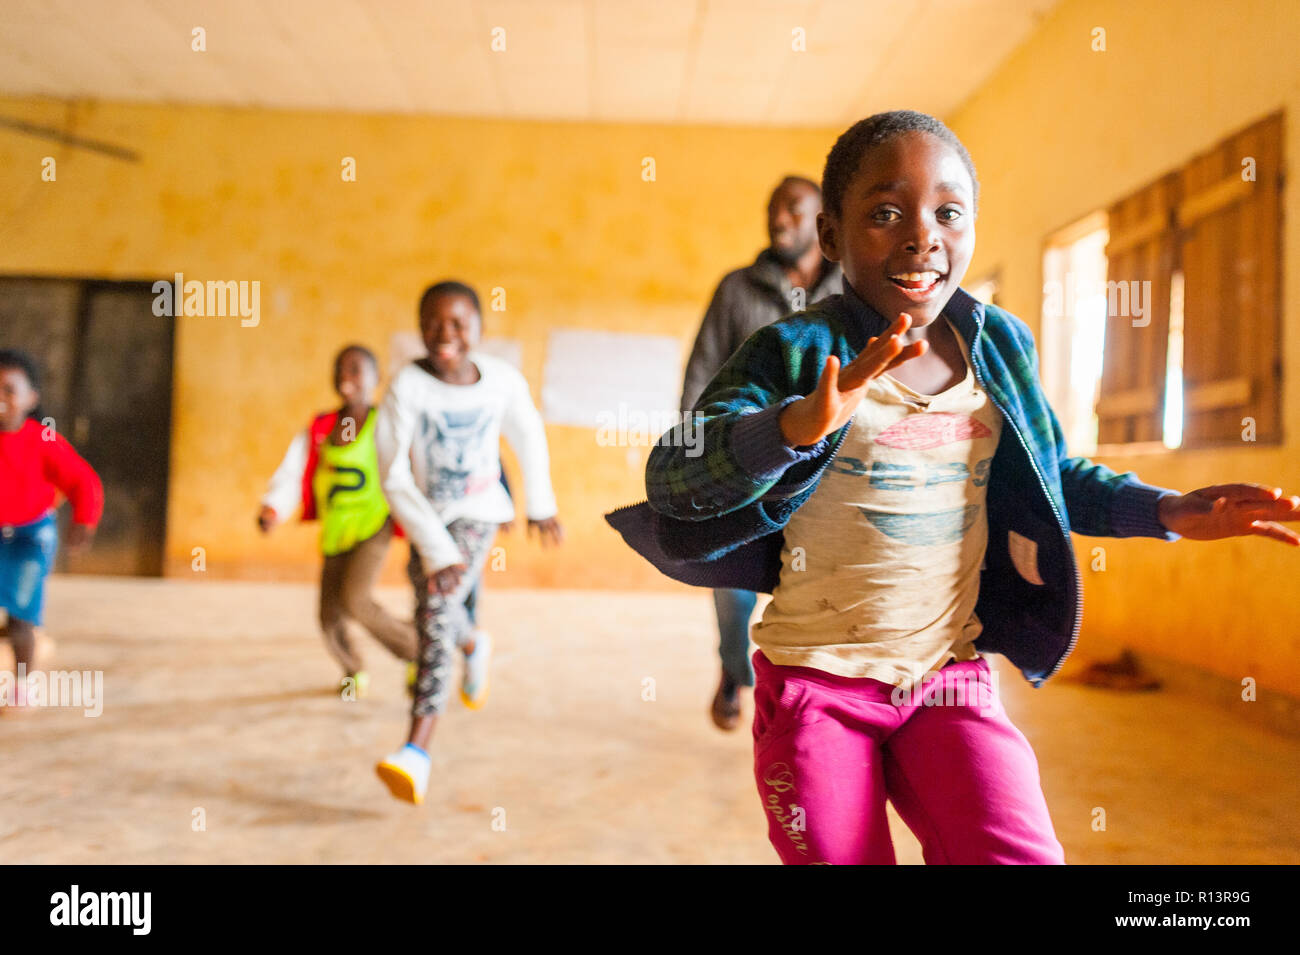 Bafoussam Cameroon  Young Smiling African Girls And Boys Running And